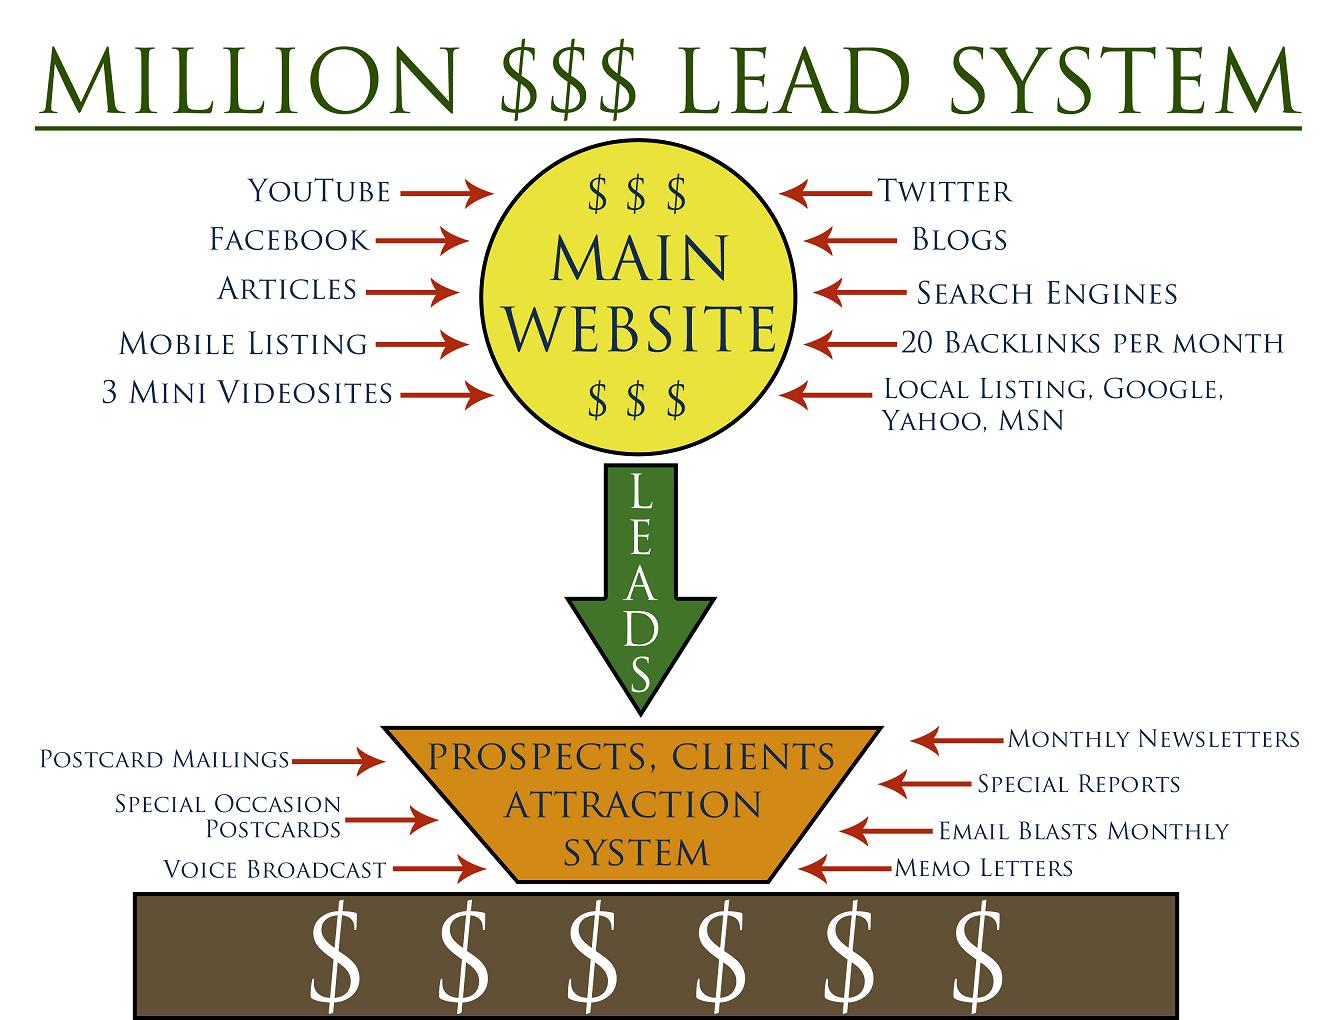 Insurance Leads157 Insurance Lead Marketing Secrets. Car Window Repair Cleveland Ohio. Riverside Medical School Types Of Dehydration. Respiratory Therapy School Online. Best Social Media Sites For Small Business. Usa Home Security Systems Help Desk Position. Stock Market Trading Days Cachefly Speed Test. Limited Liability Company Delaware. Air Duct Cleaning Omaha Ne Daytop Mendham Nj